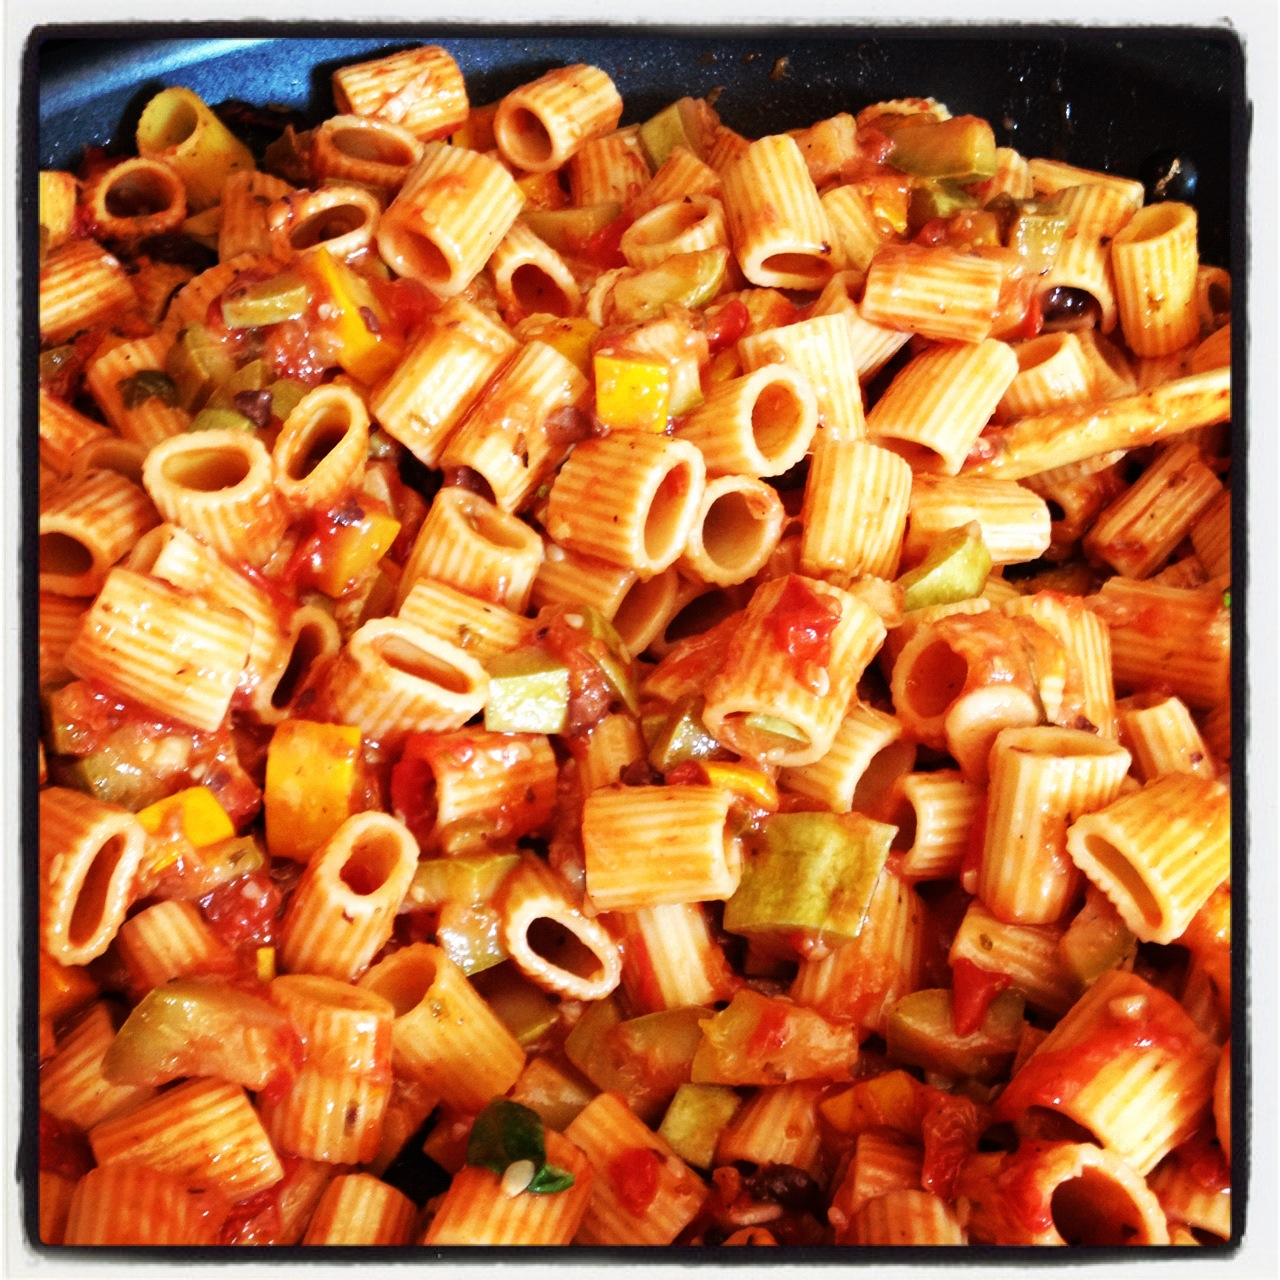 Summer Vegetable Rigatoni aka whatever is fresh at the local product stand. Make use out of whats seasonal and you get the most amazing flavors in simple dishes like this one.